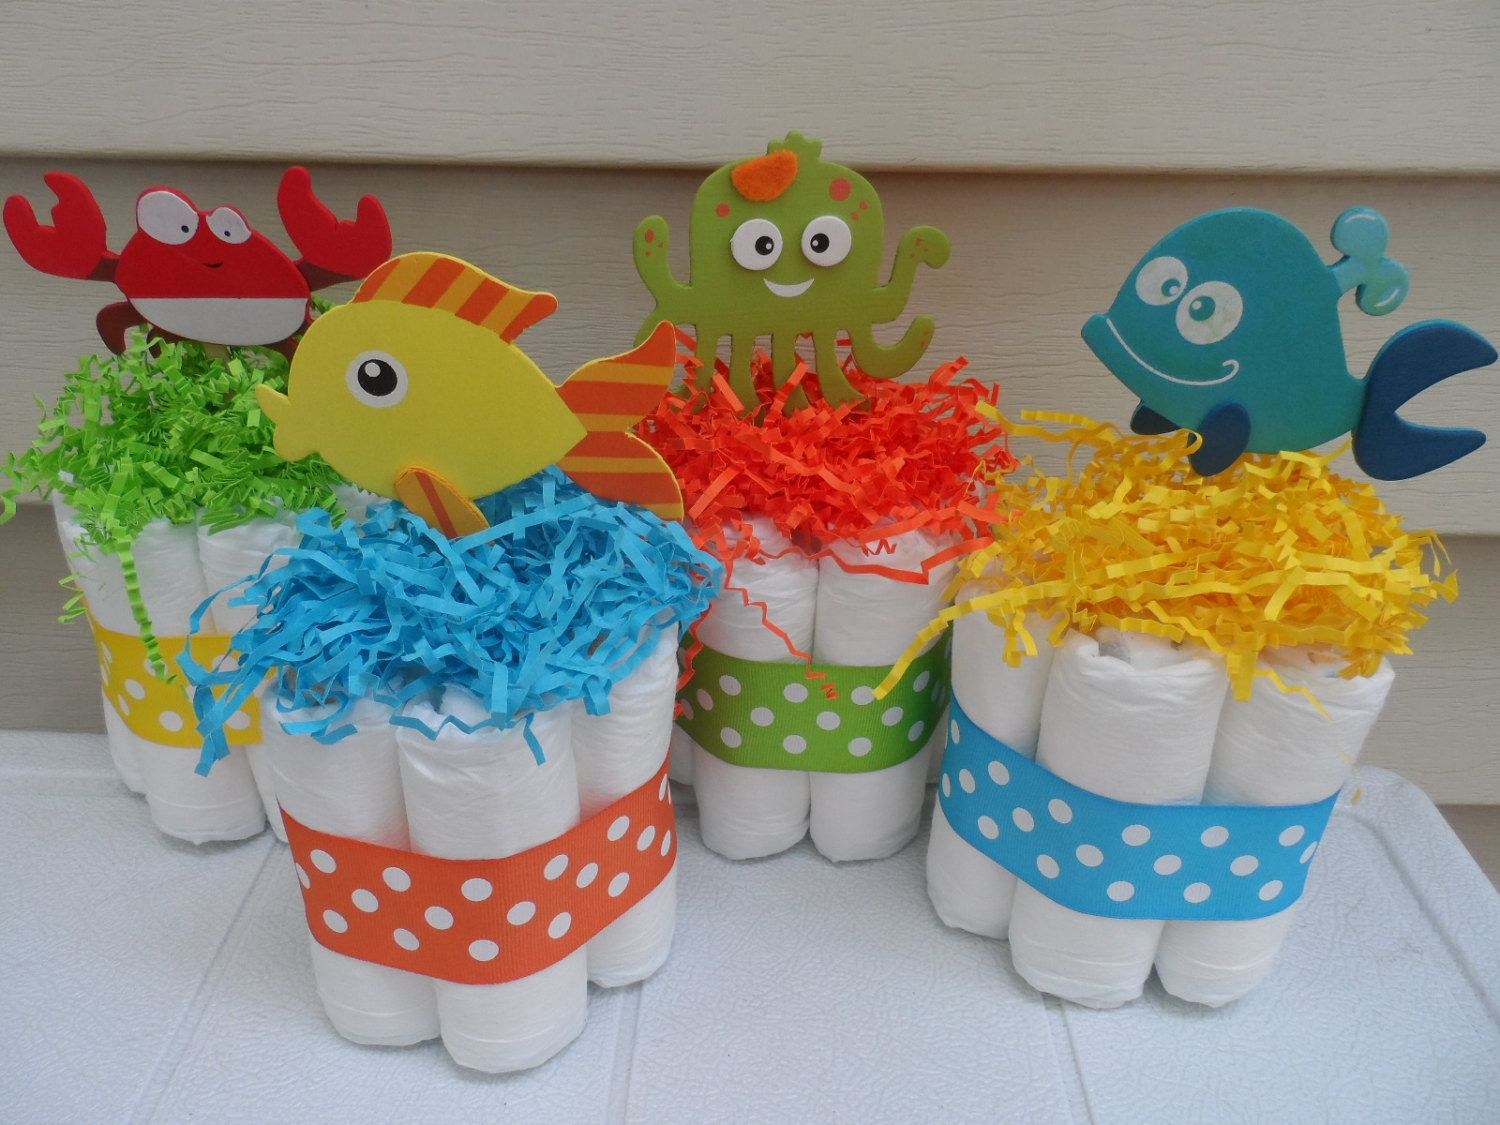 Baby Shower Favors Under The Sea ~ Under the sea theme mini diaper cakes baby shower centerpiece